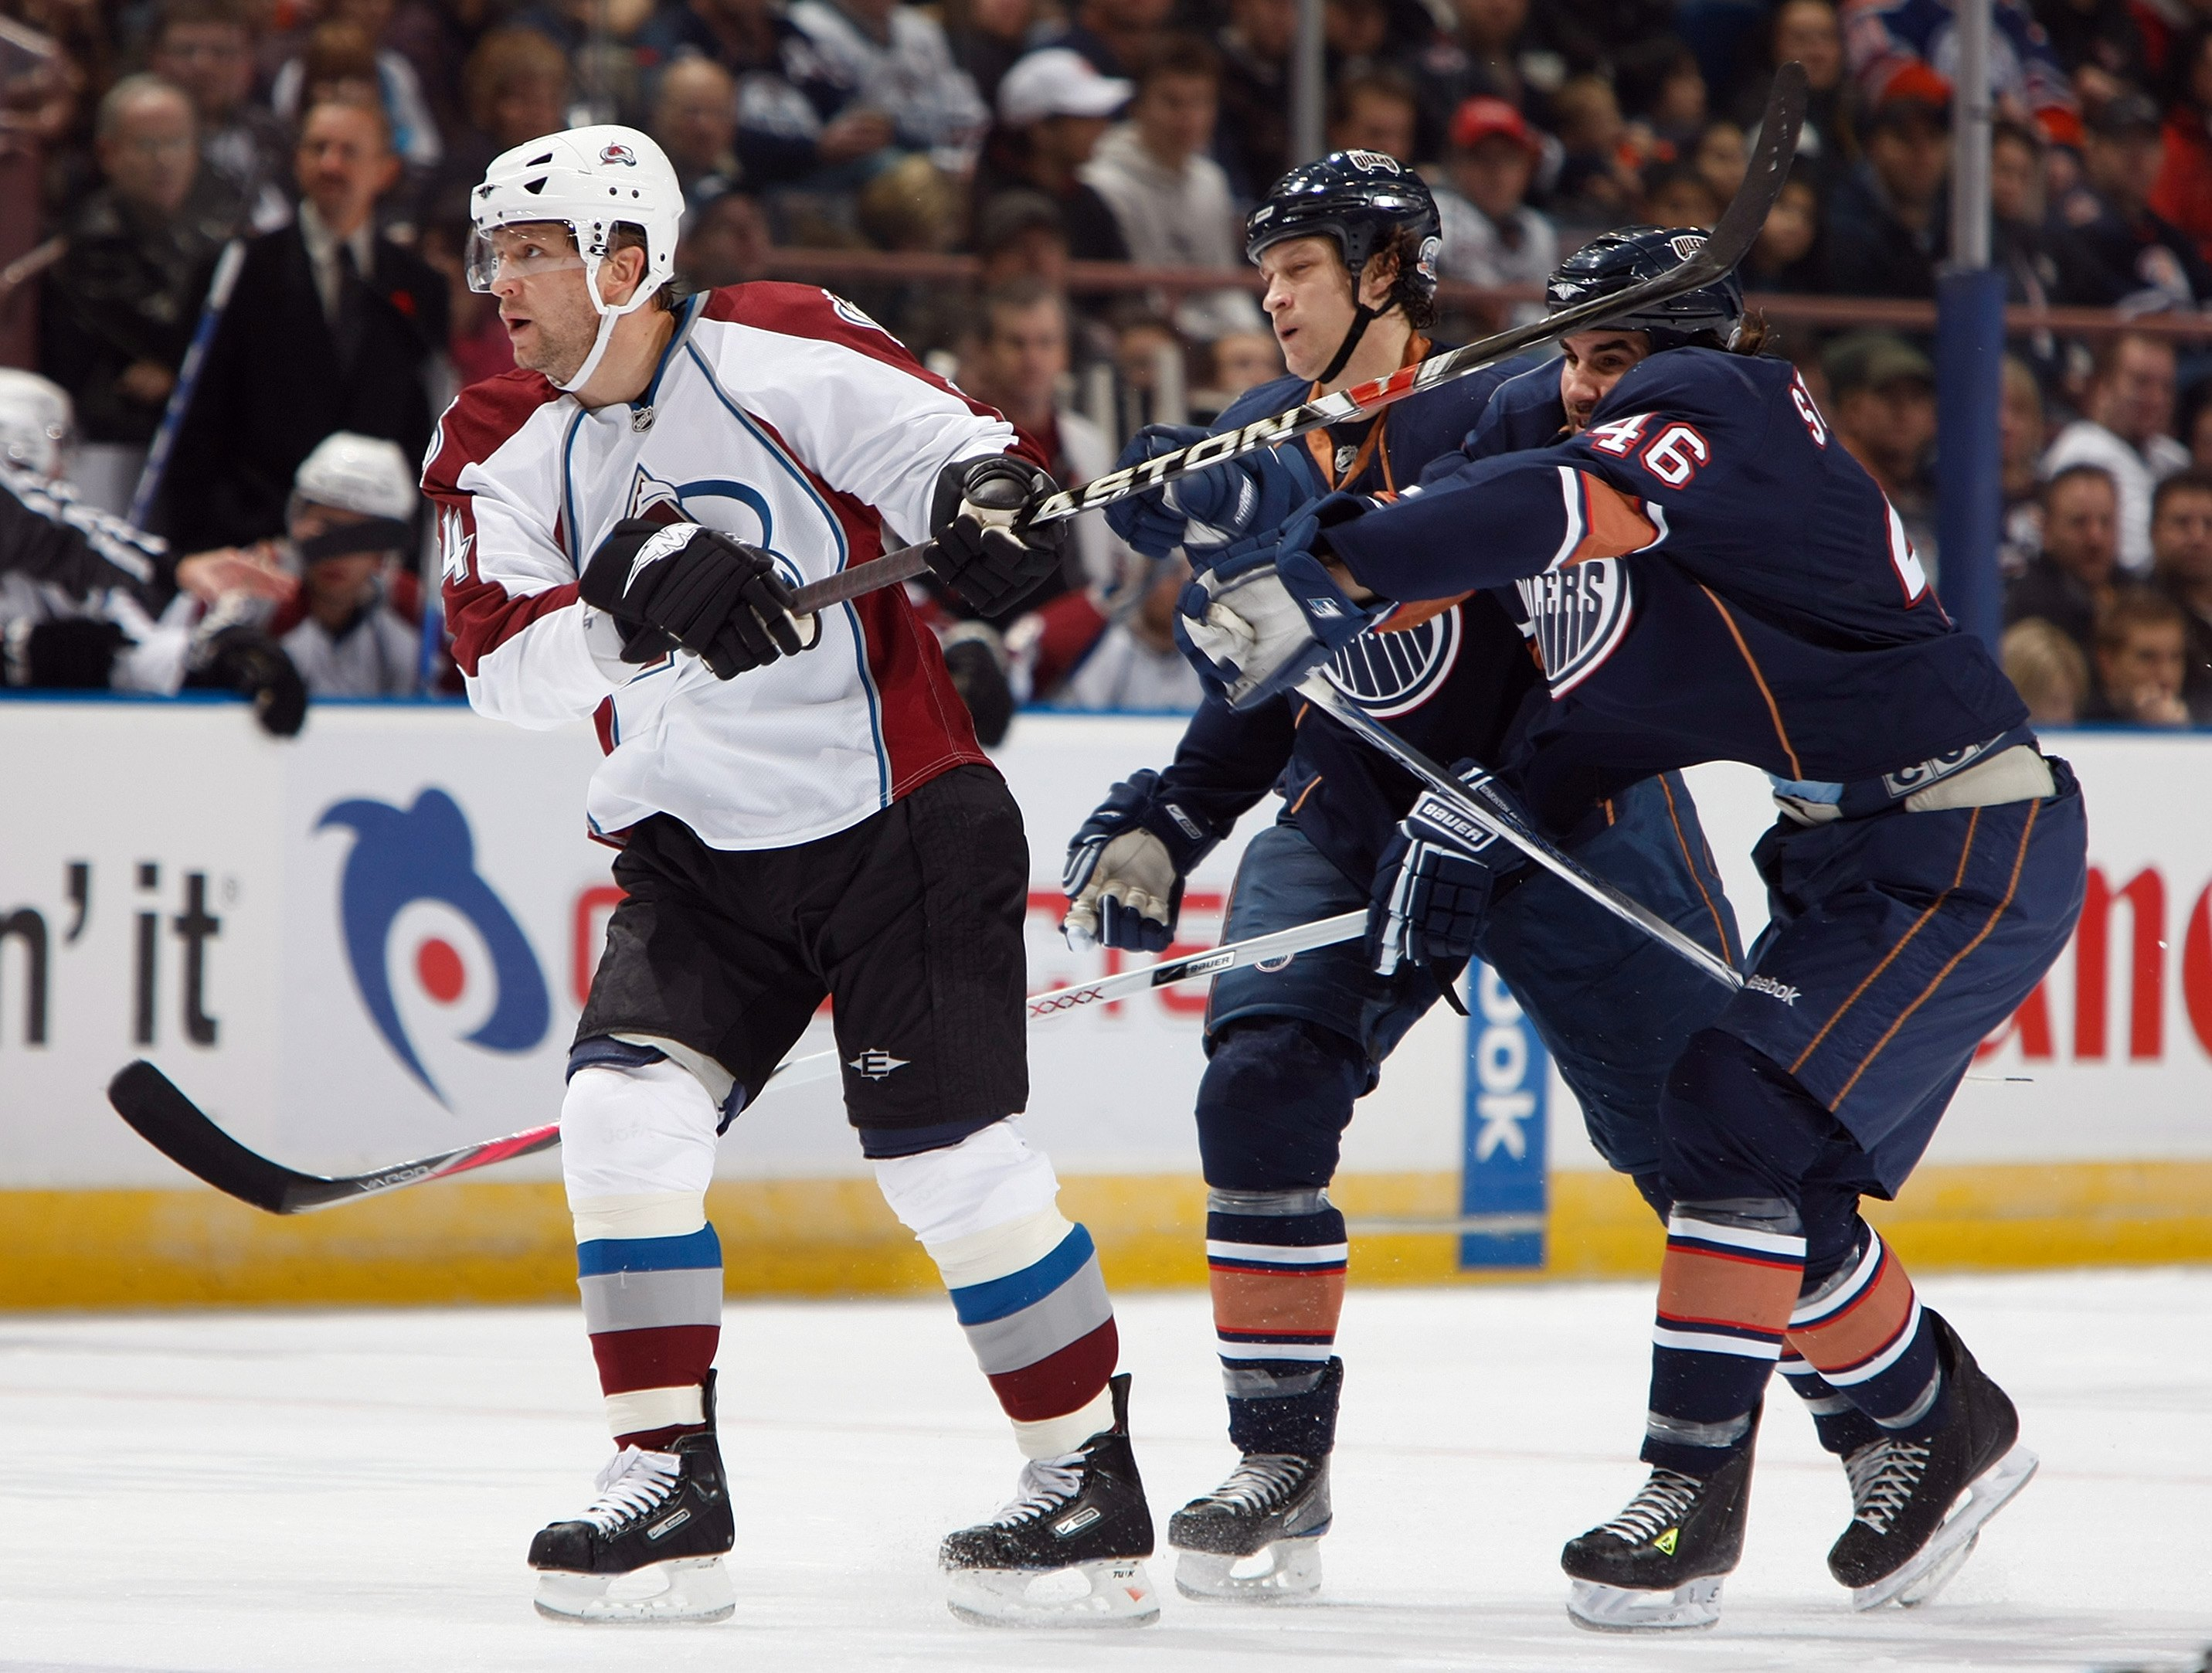 EDMONTON, CANADA - NOVEMBER 15:  Ruslan Salei #24 of the Colorado Avalanche tangles with Zach Stortini #46 of the Edmonton Oilers during their NHL game on November 15, 2008 at Rexall Place in Edmonton, Alberta, Canada. The Avalanche defeated the Oilers 3-